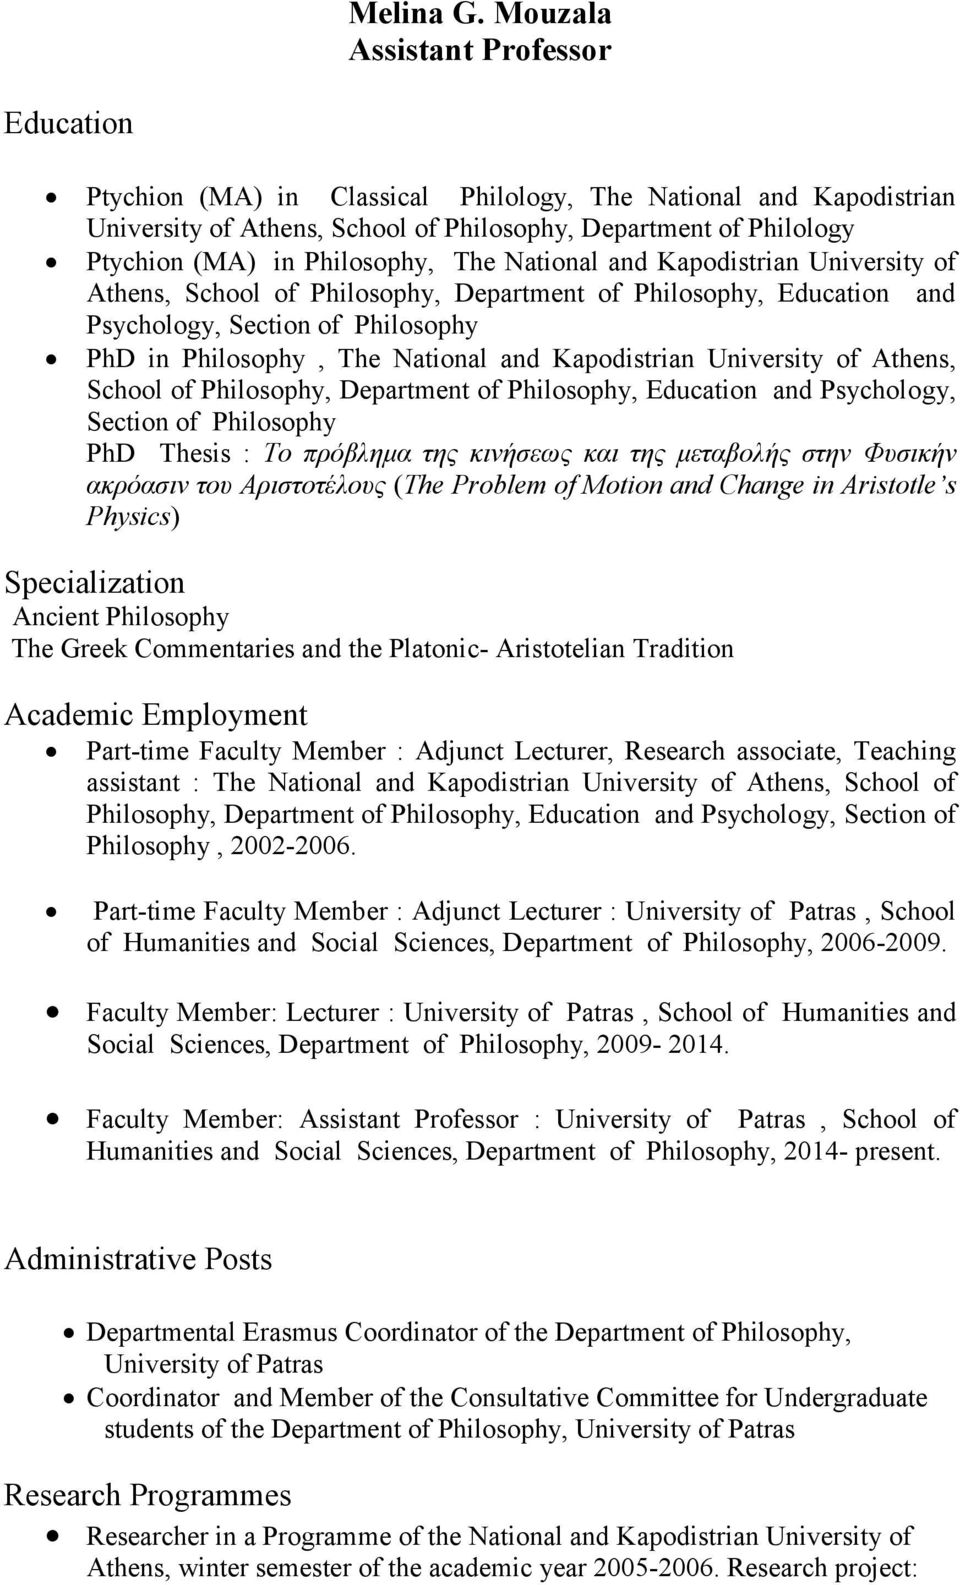 Philosophy, The National and Kapodistrian University of Athens, School of Philosophy, Department of Philosophy, Education and Psychology, Section of Philosophy PhD in Philosophy, The National and